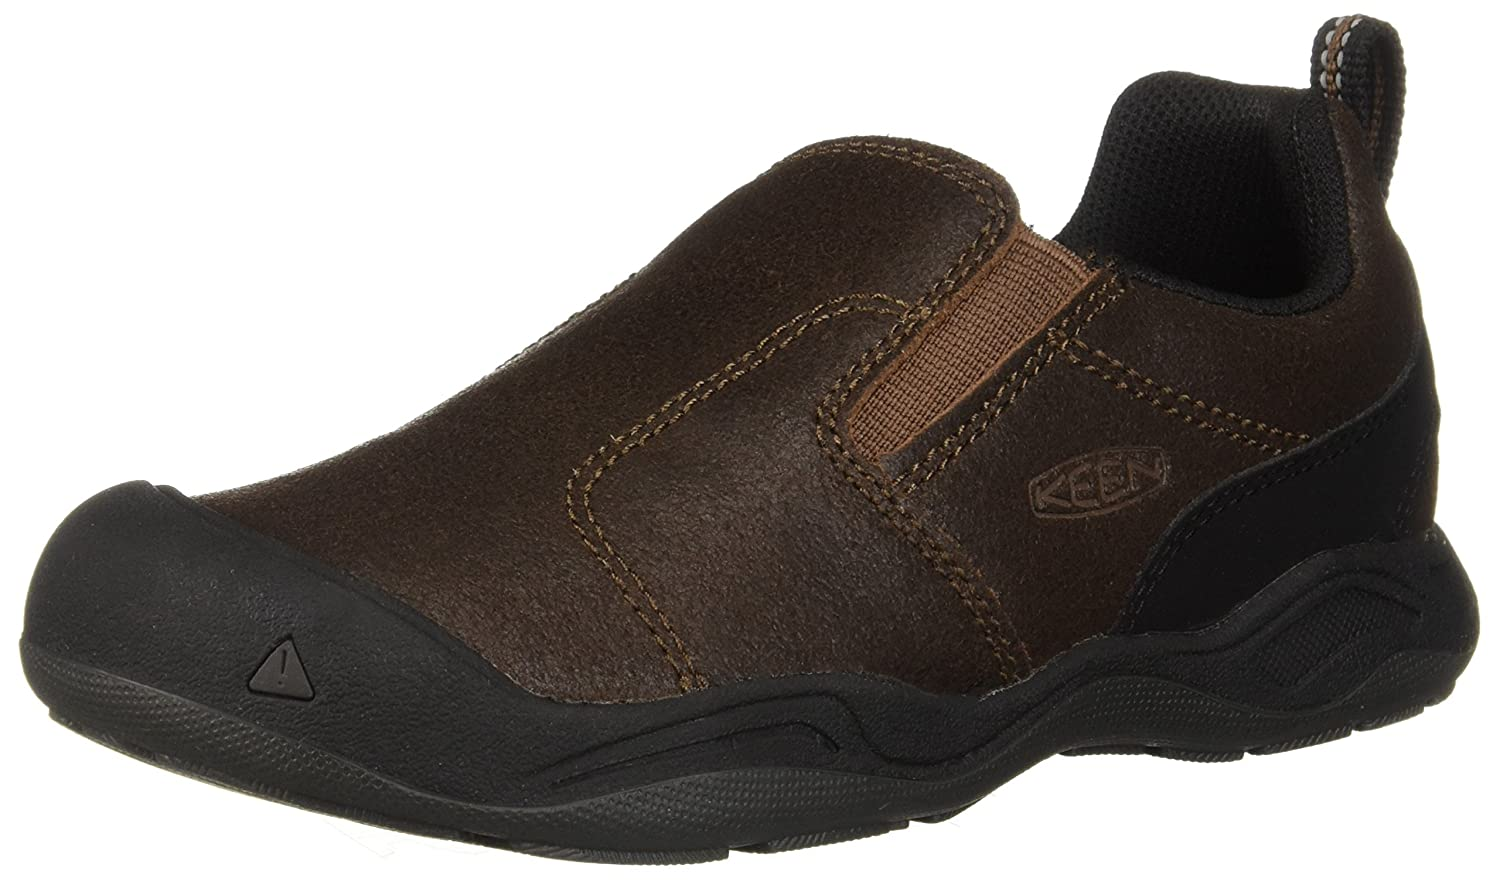 KEEN Jasper Slip-on Hiking US|Dark Shoe B077BJ8374 5 M US|Dark Hiking Earth/Mulch 281786